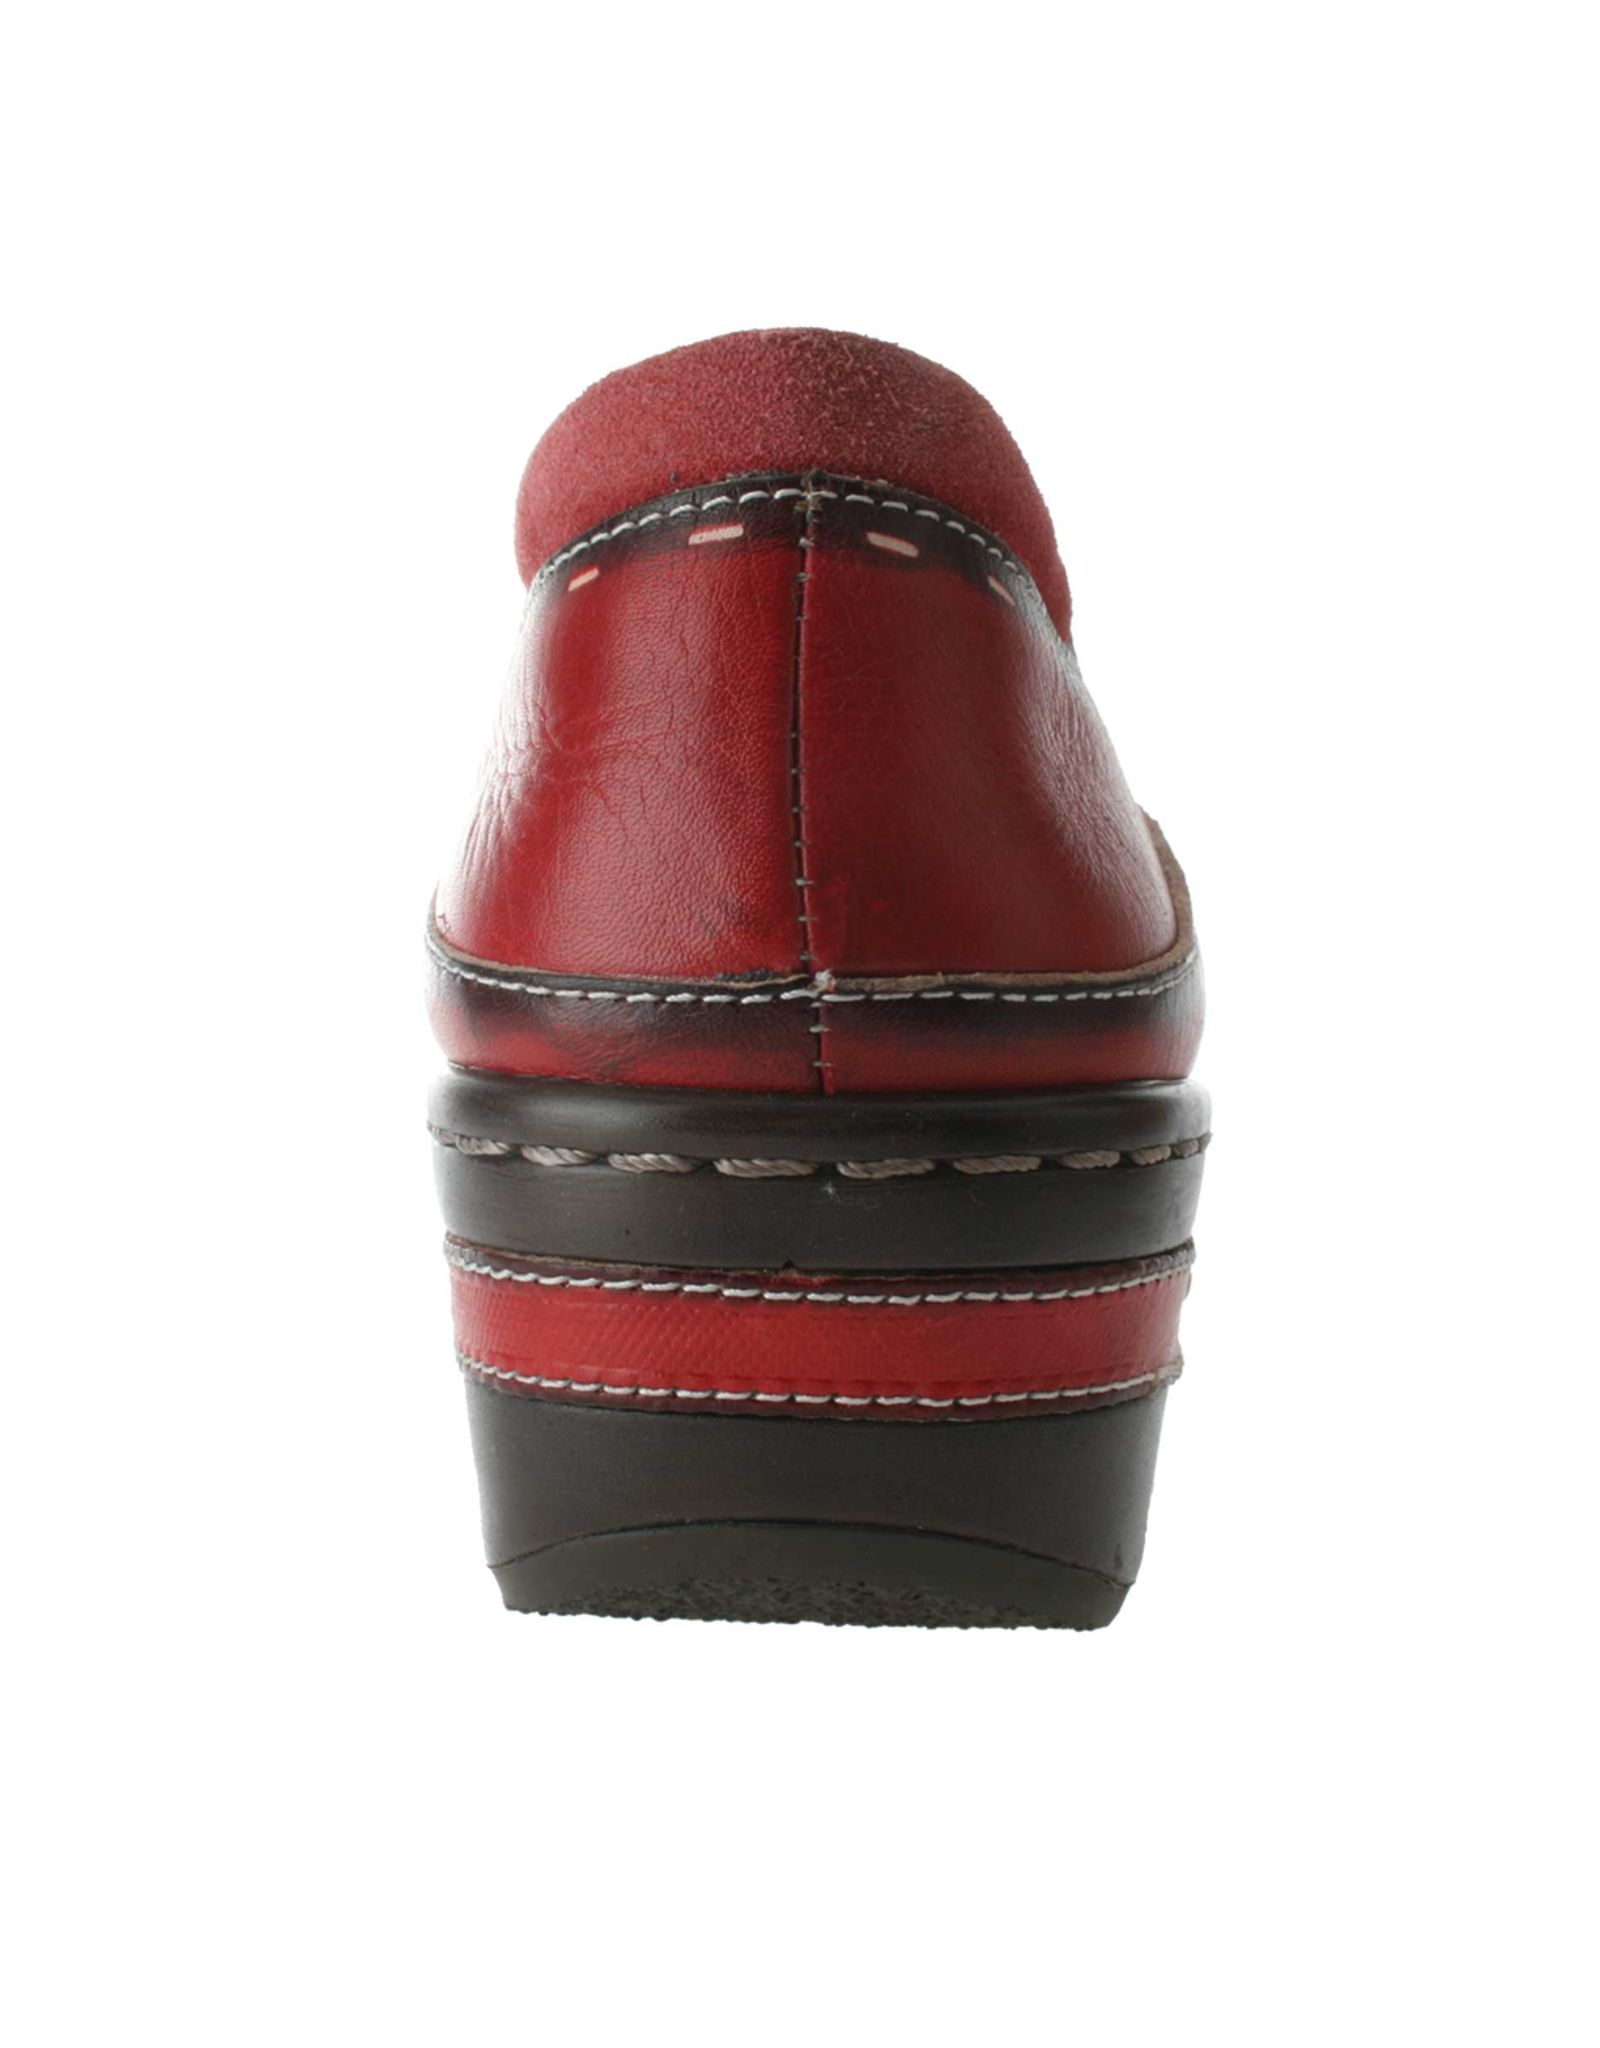 Spring Footwear Red Leather Clog